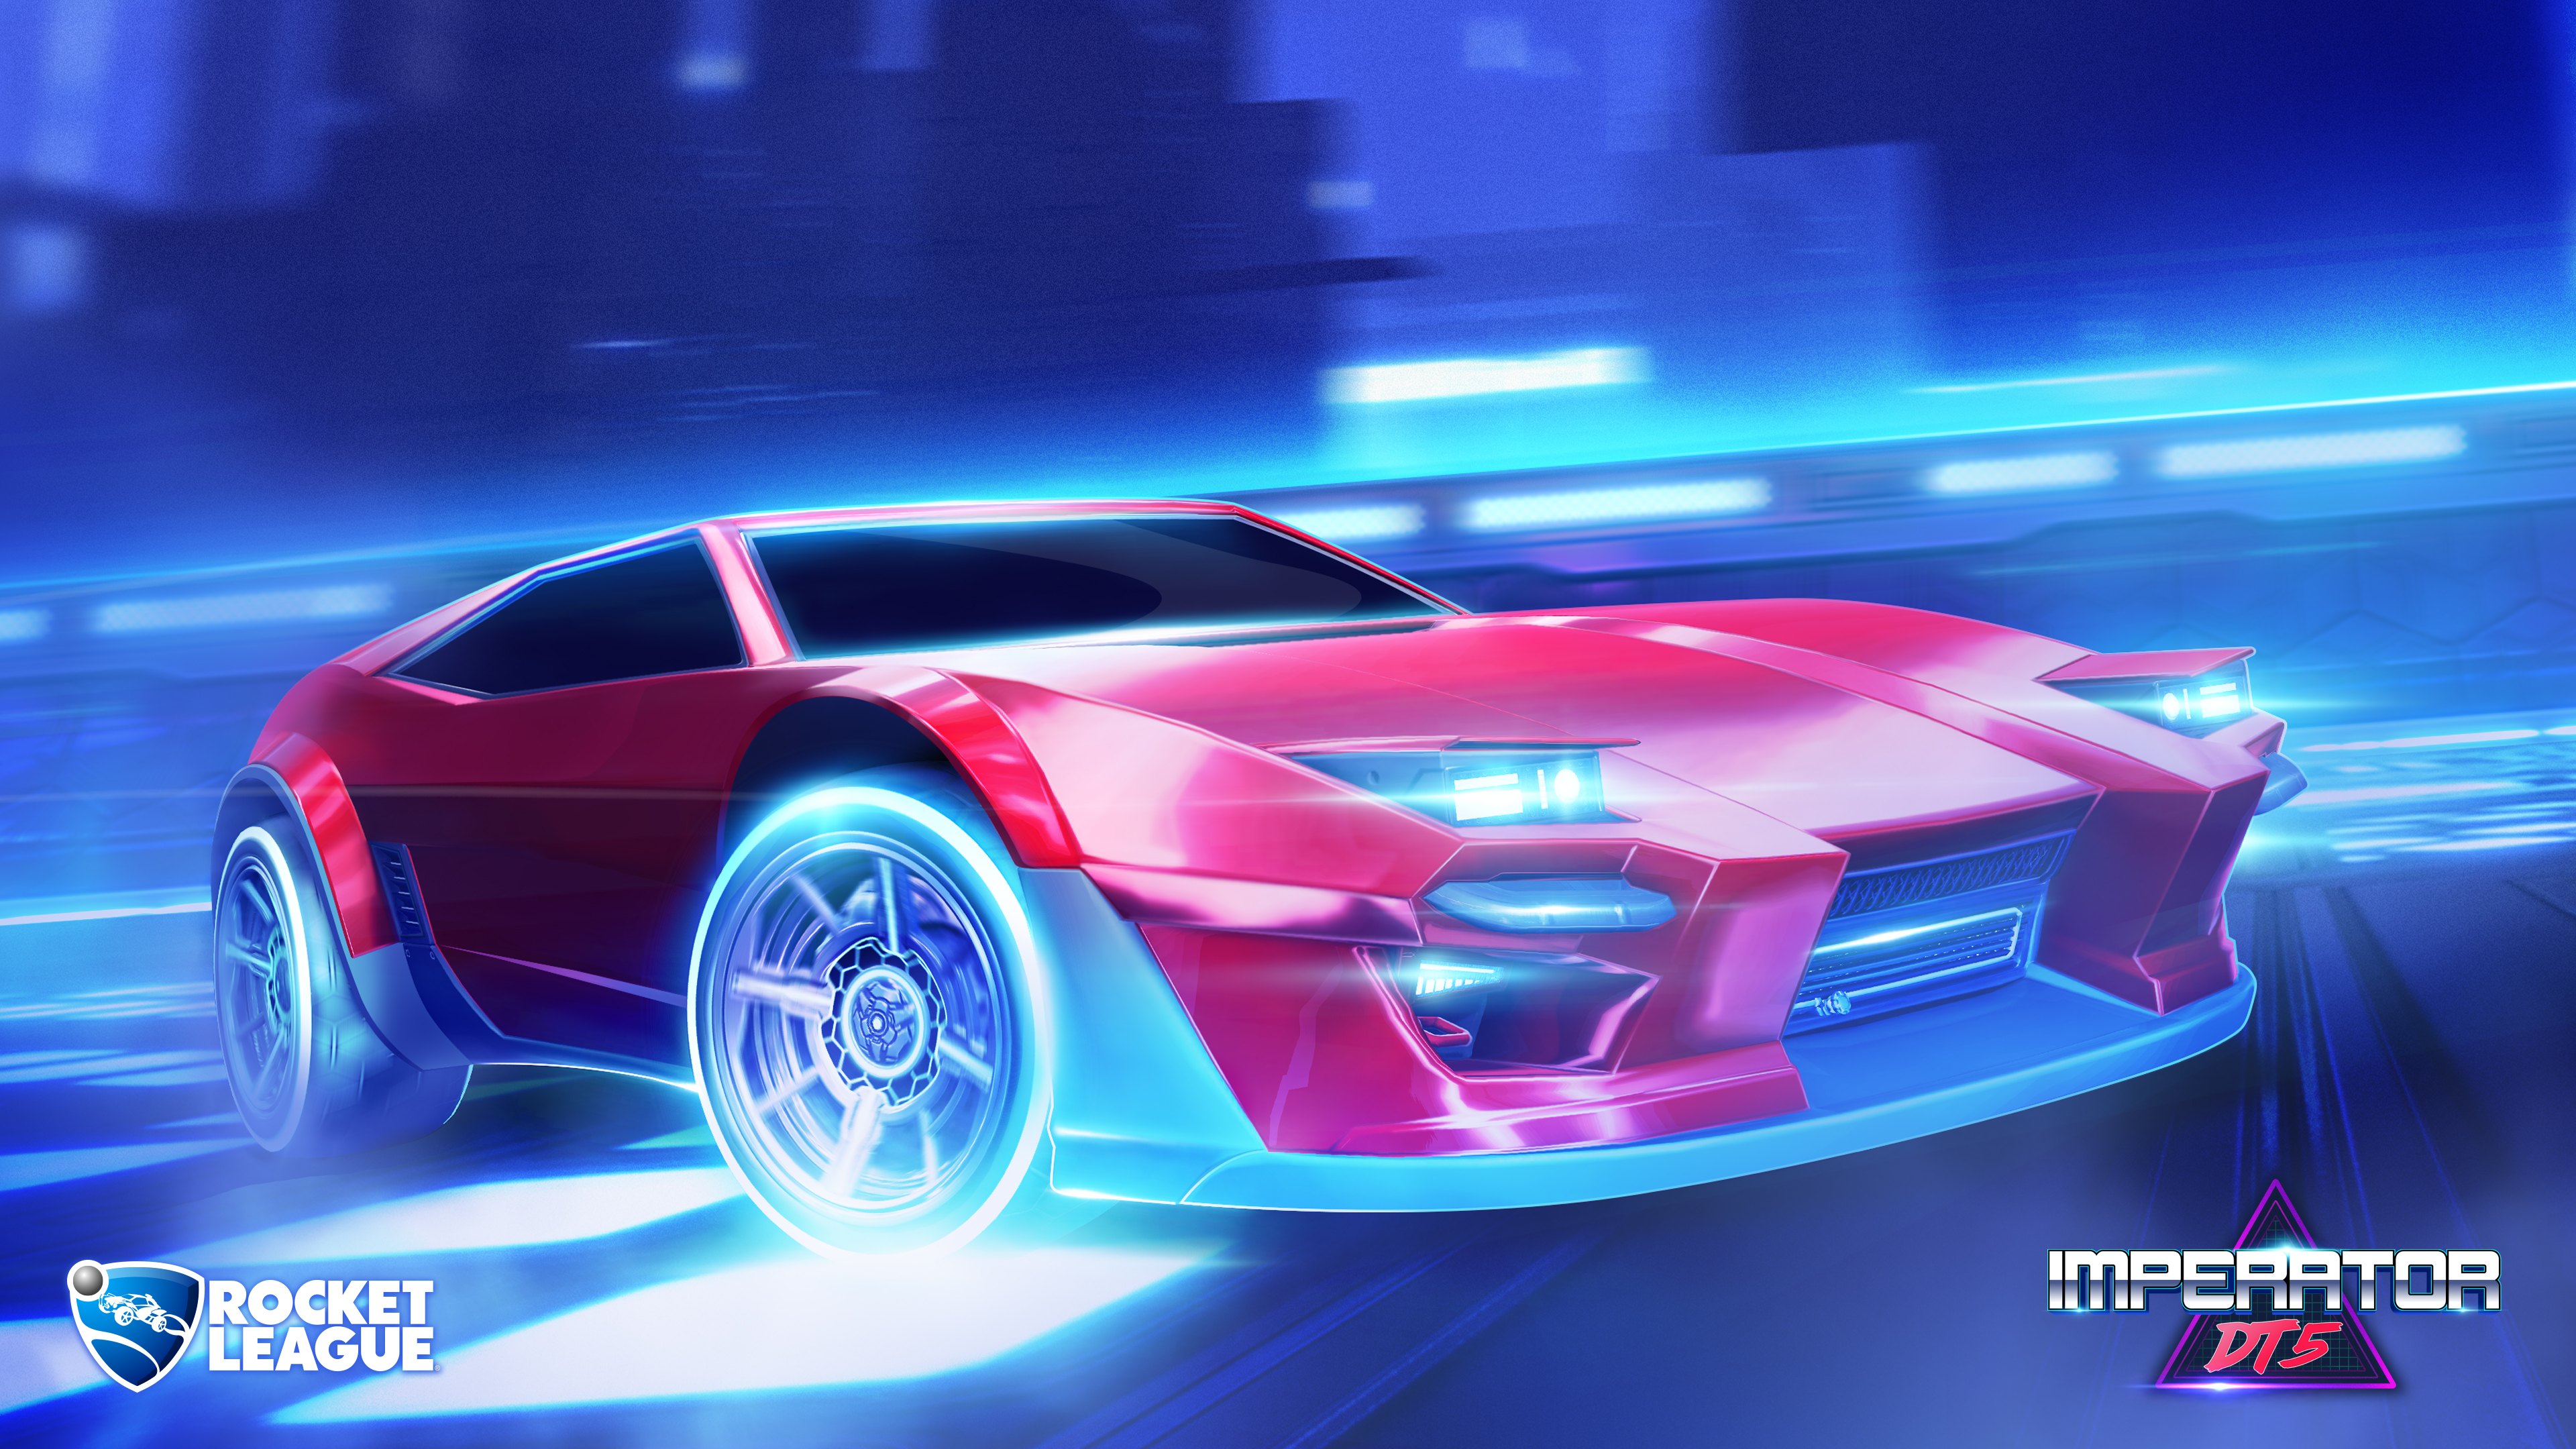 Rocket League – Velocity crate starts dropping on Dec 4th 2017